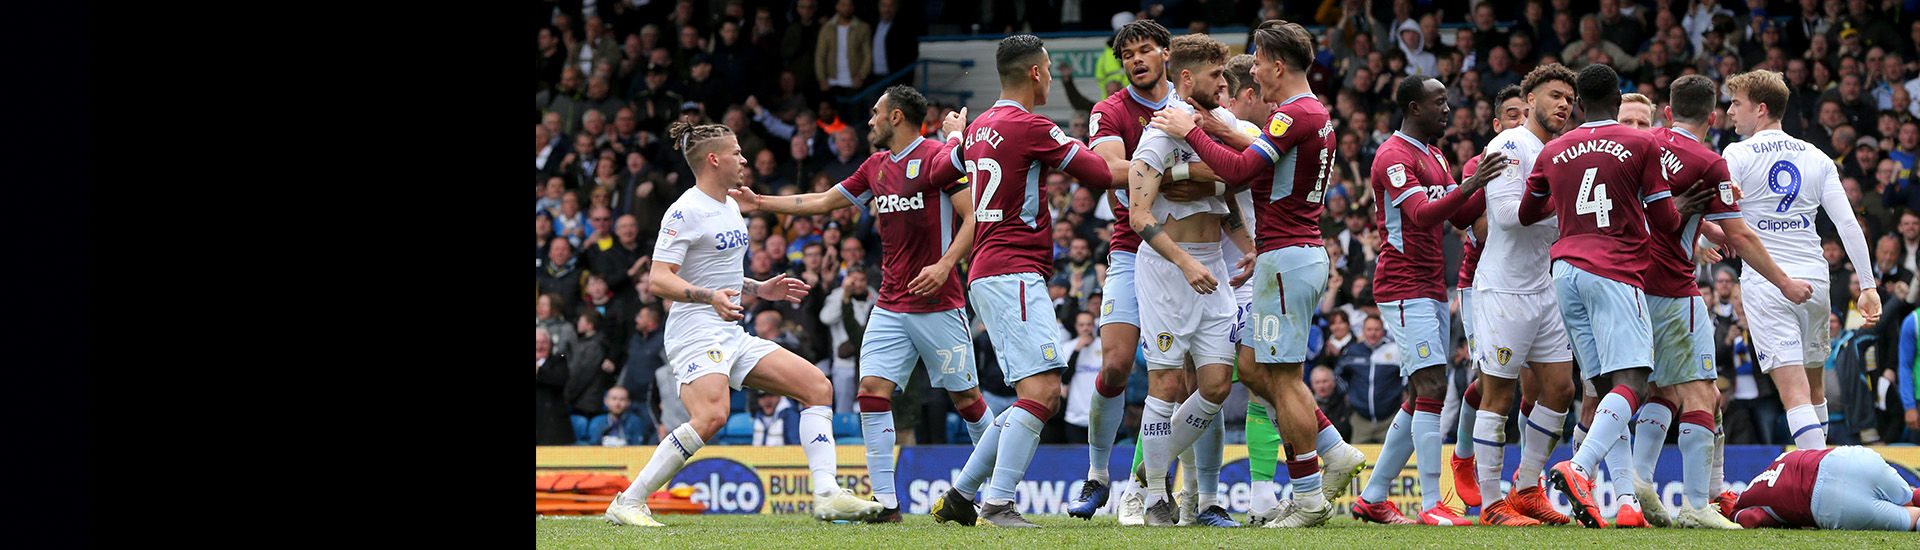 85fa78226f0 Report  Leeds United 1-1 Aston Villa